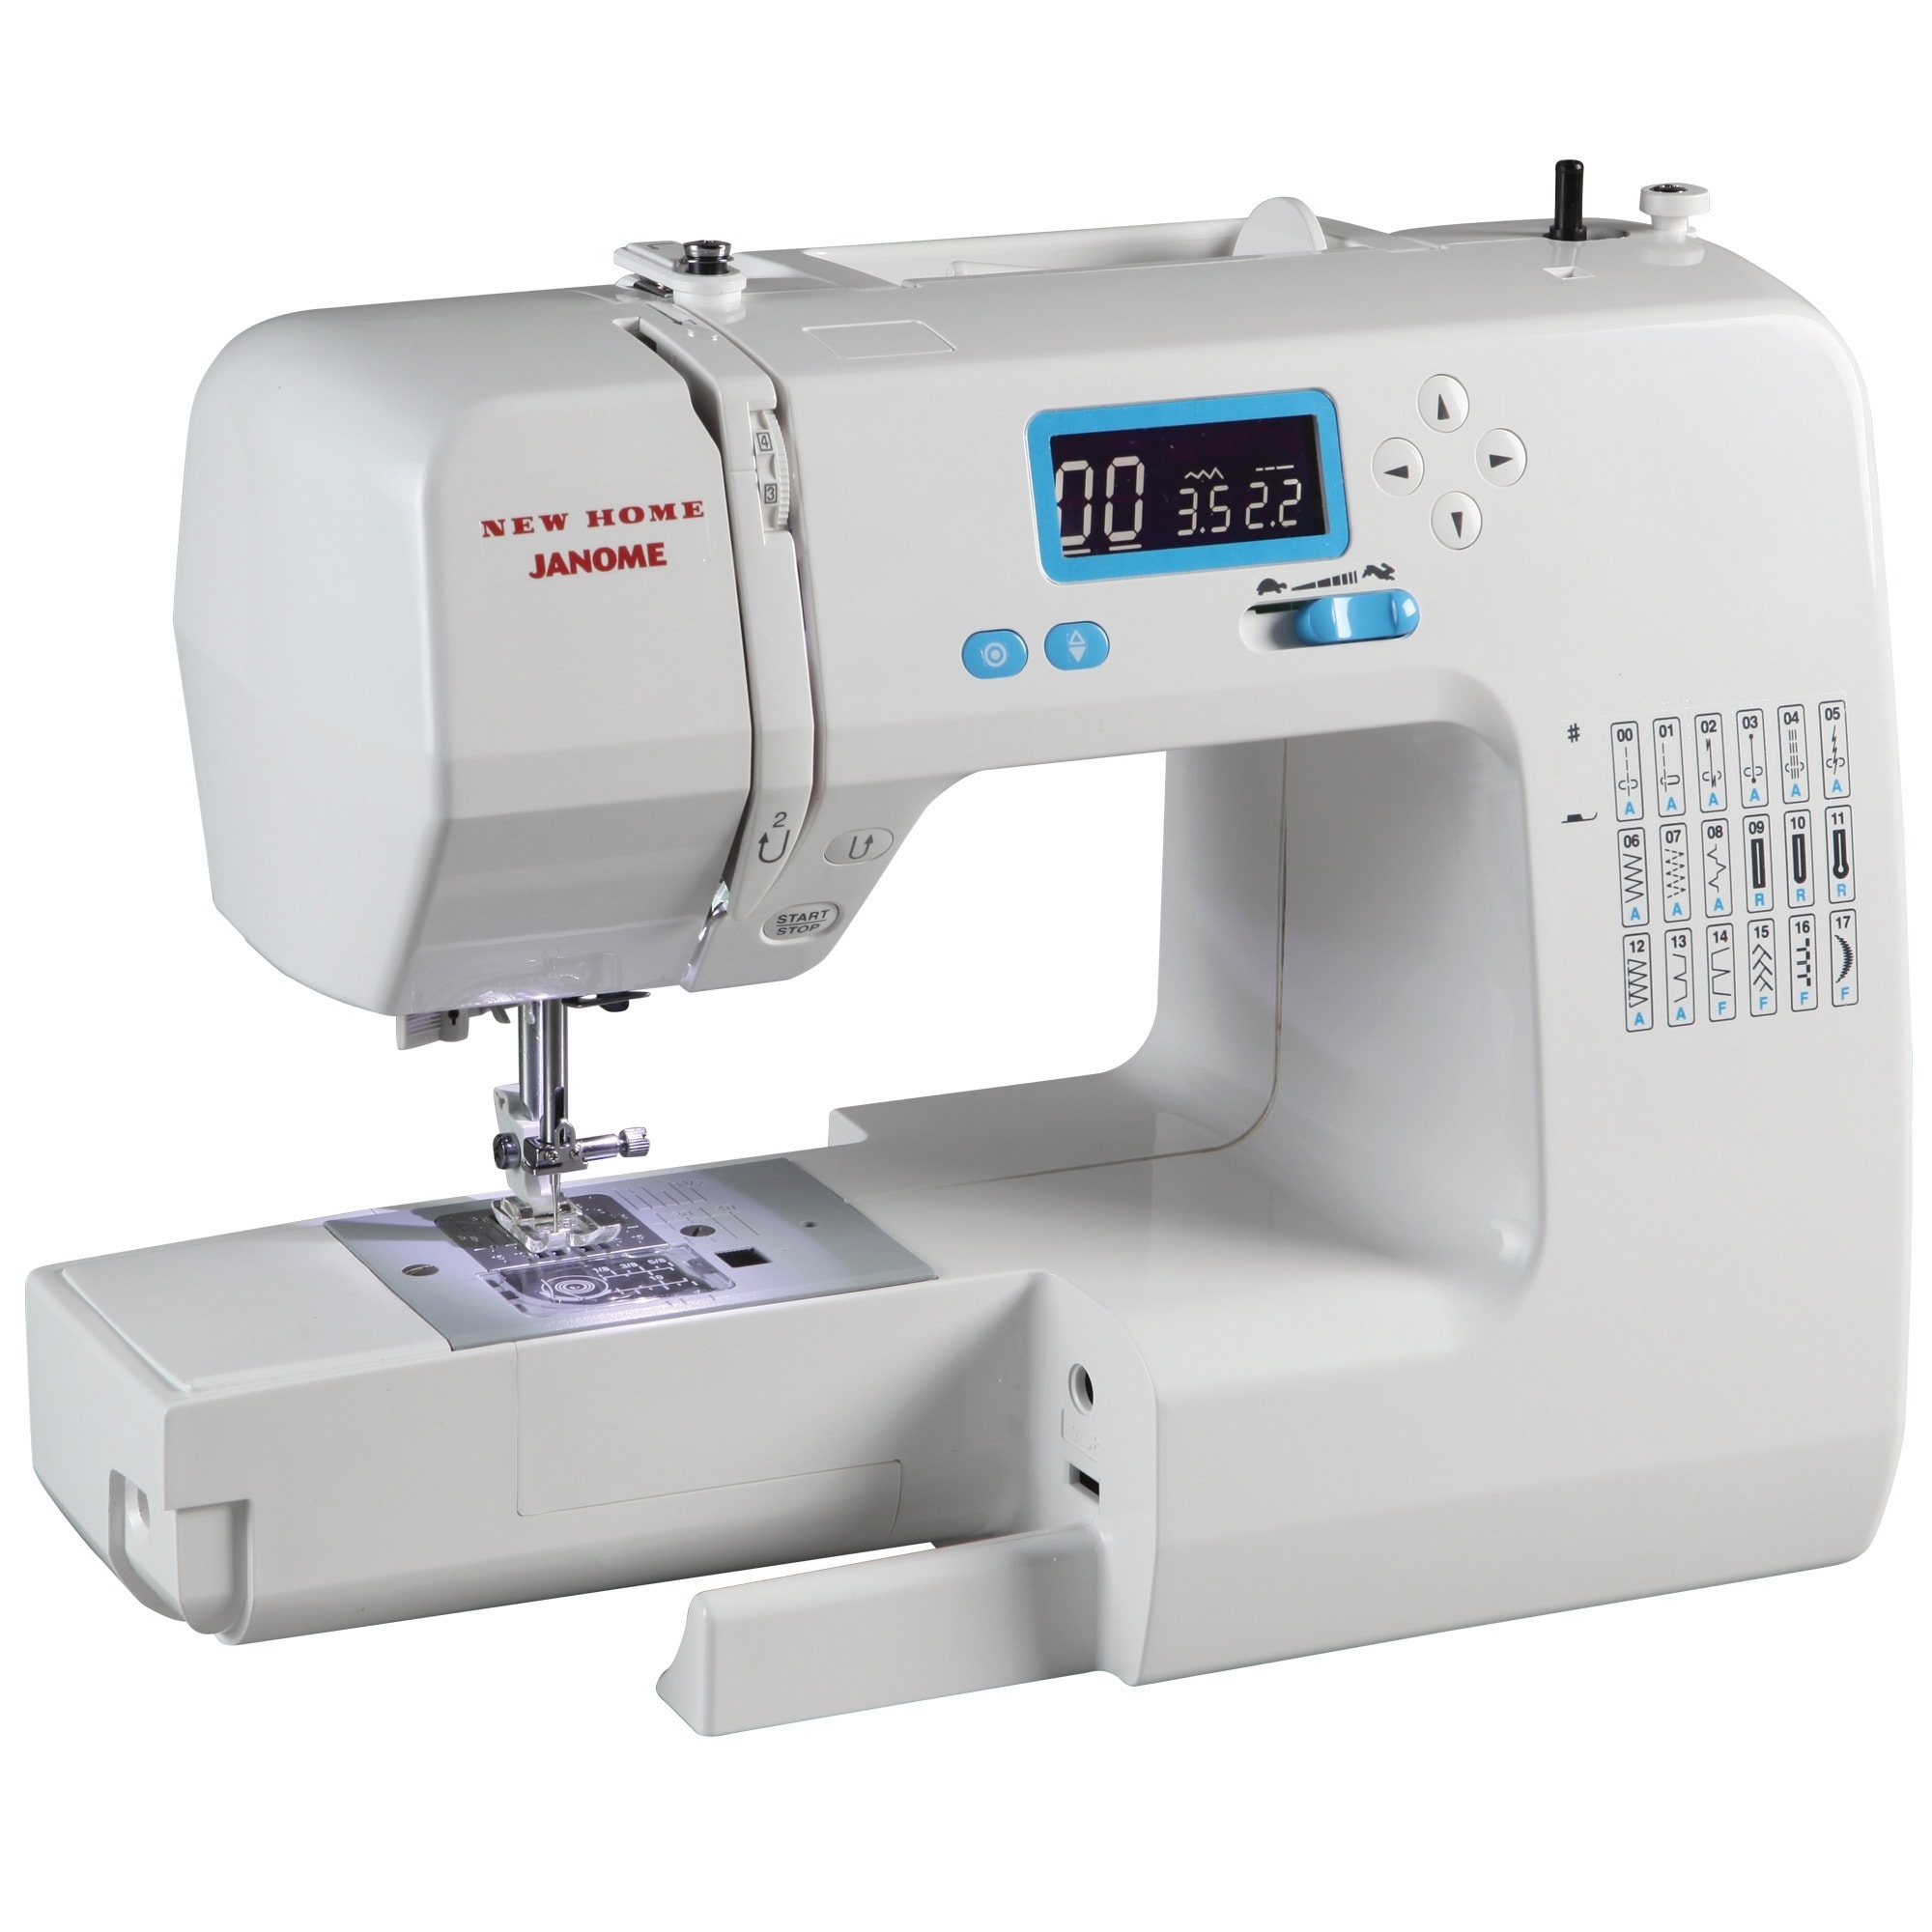 lewis rsp janome machine excel com john buyjanome decor pdp online at johnlewis main sewing quilt quilting